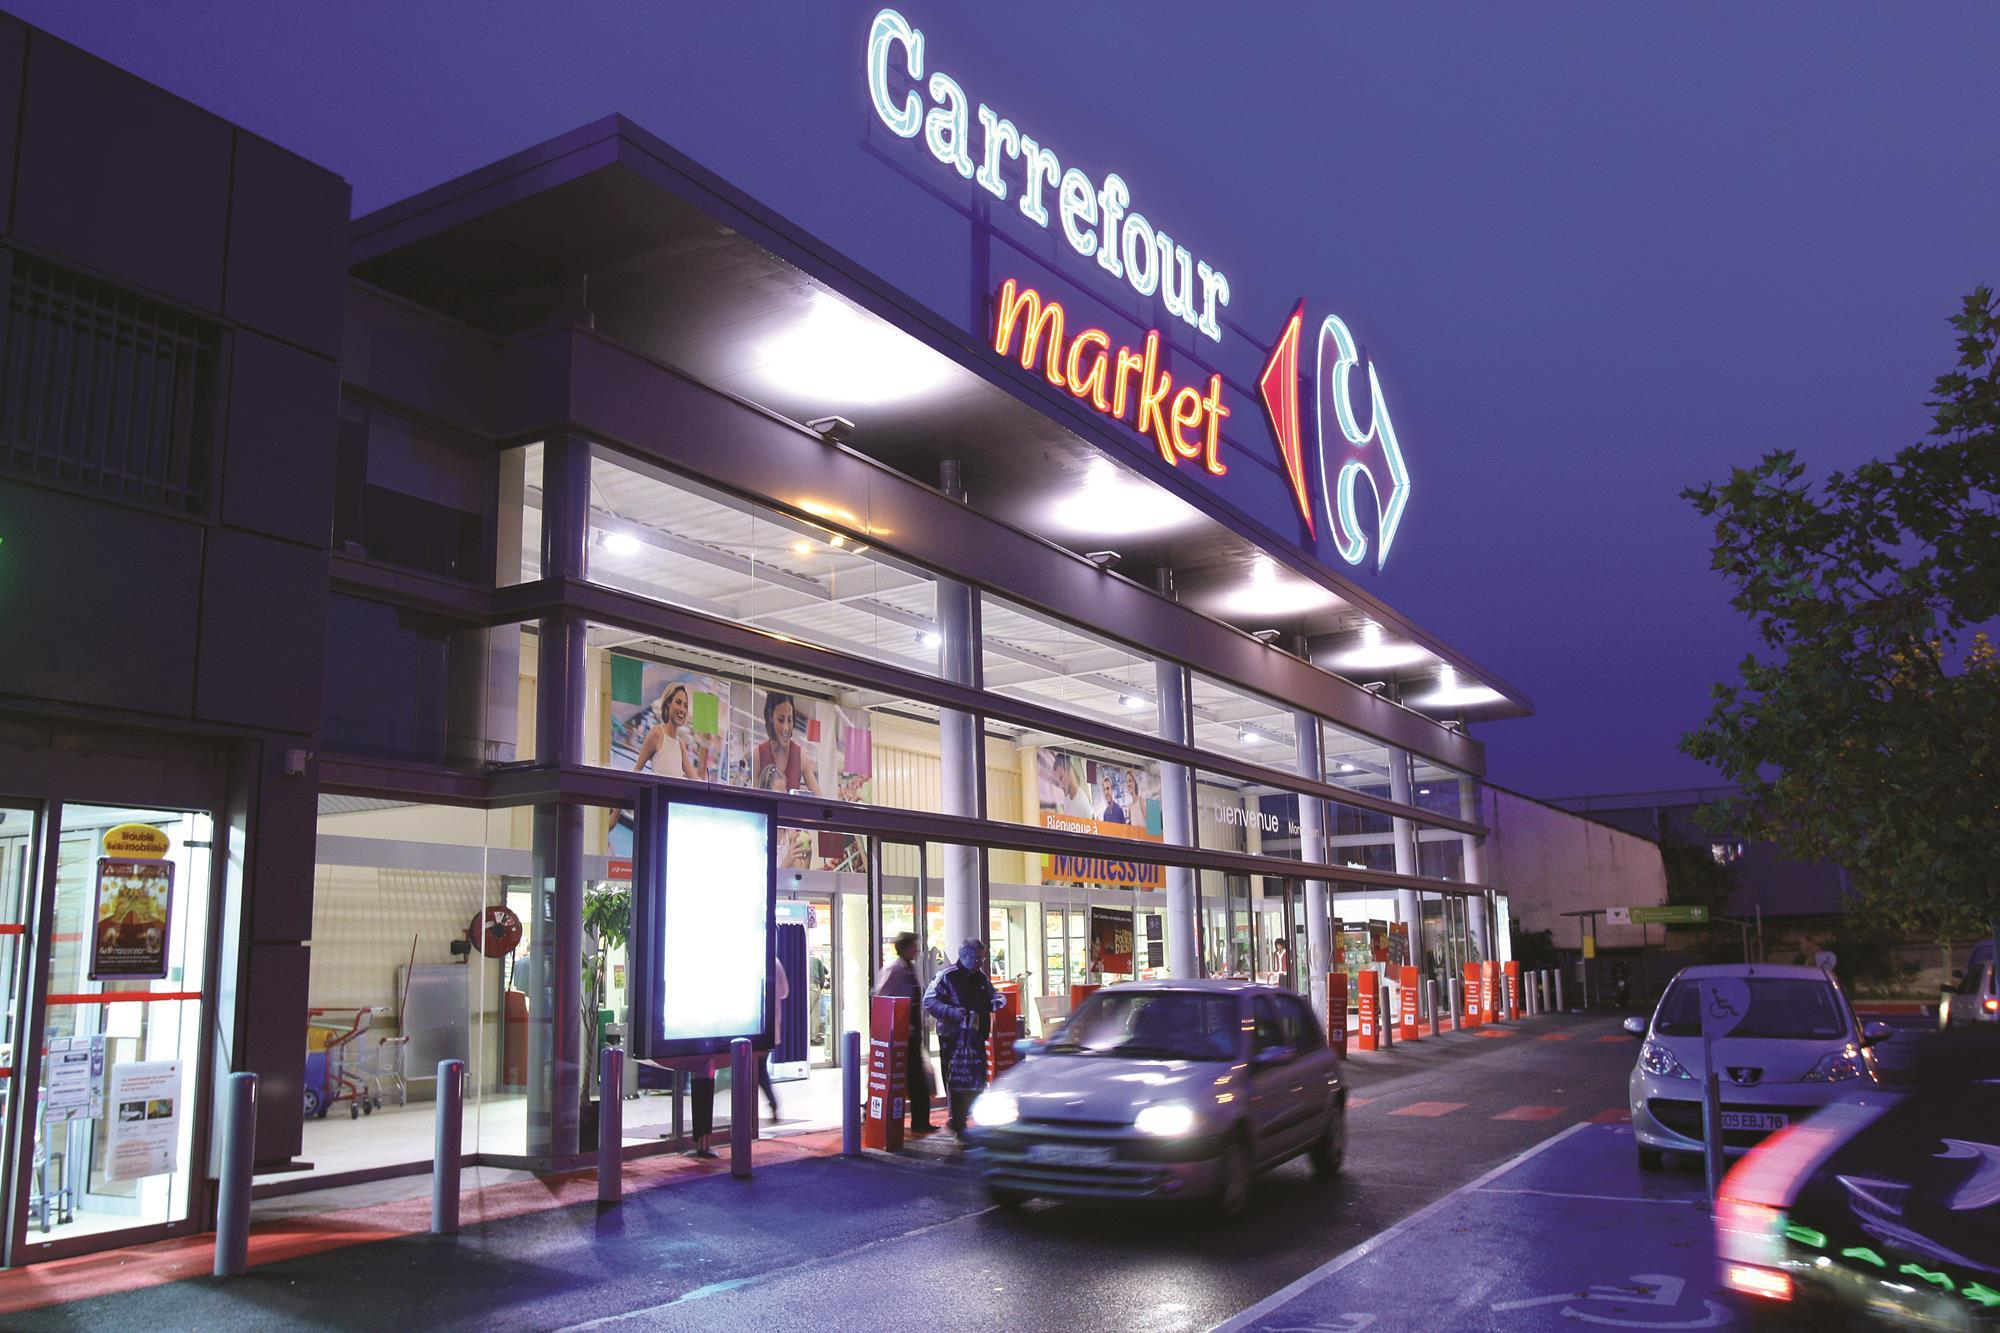 analysis of carrefour In 1959 carrefour supermarket company is set by fournier, badin and defforey families who run discount supermarket in annecy carrefour is a french retailer.